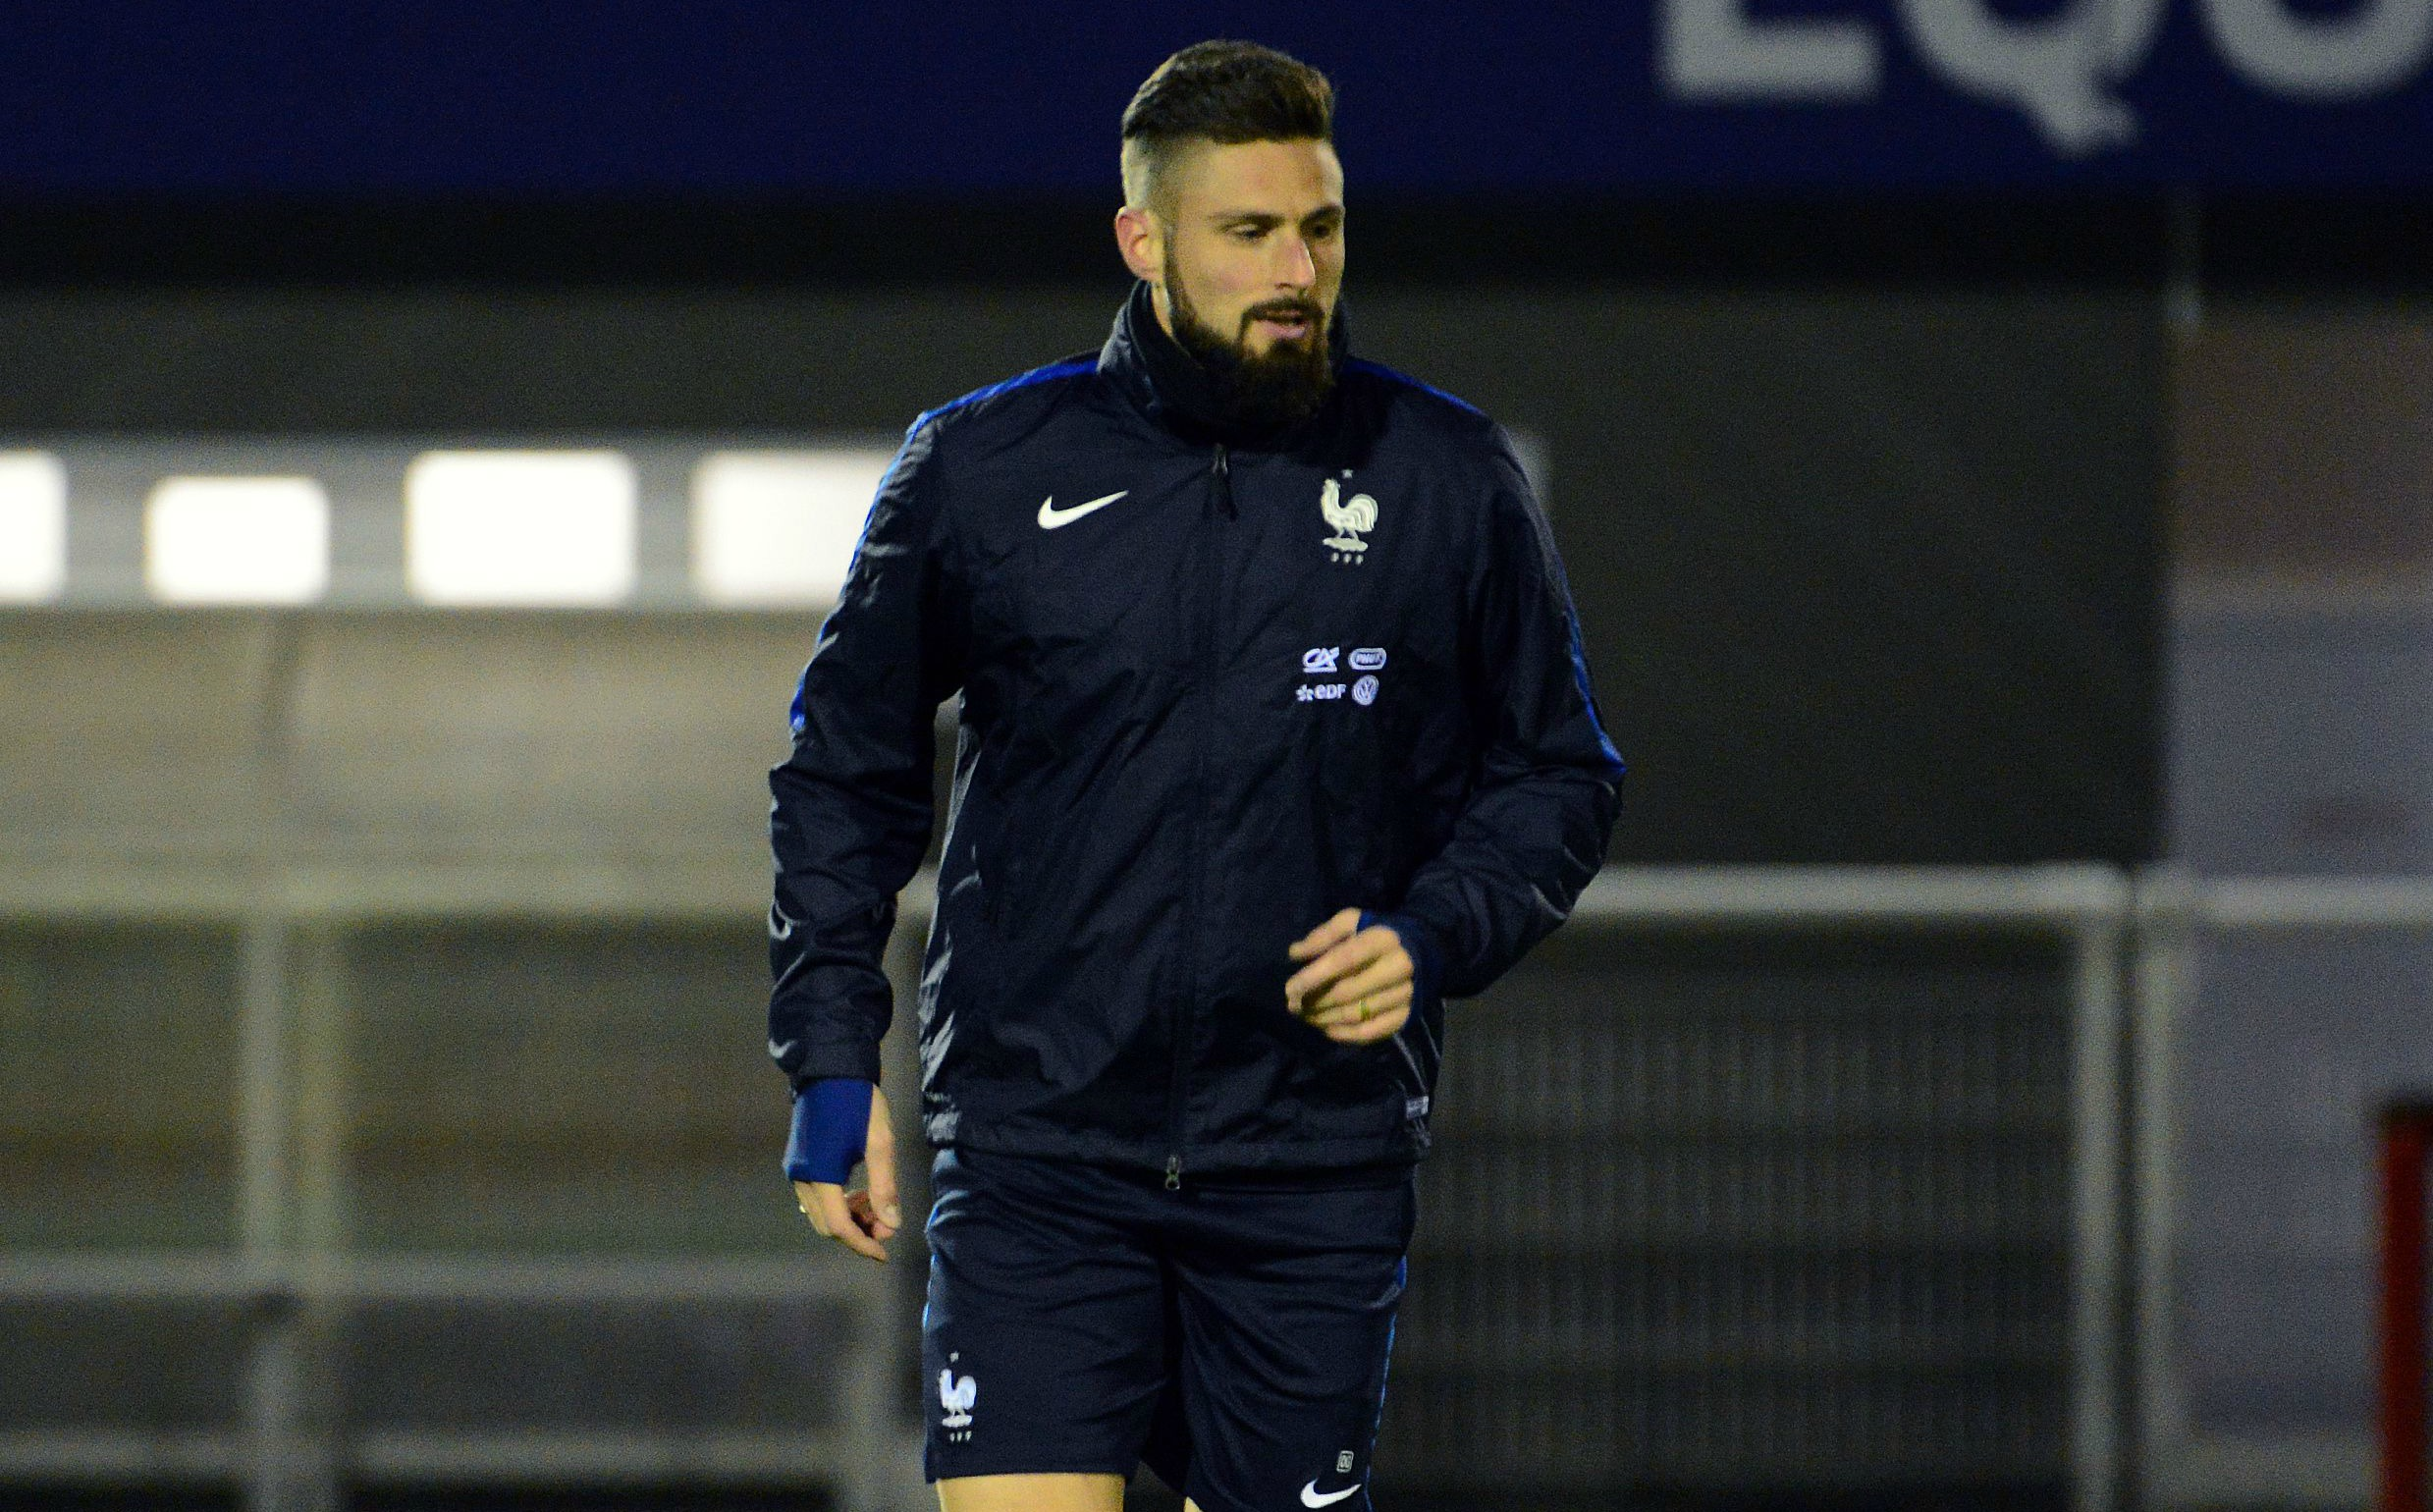 Arsenal star Olivier Giroud still not fully fit, claims France manager Didier Deschamps